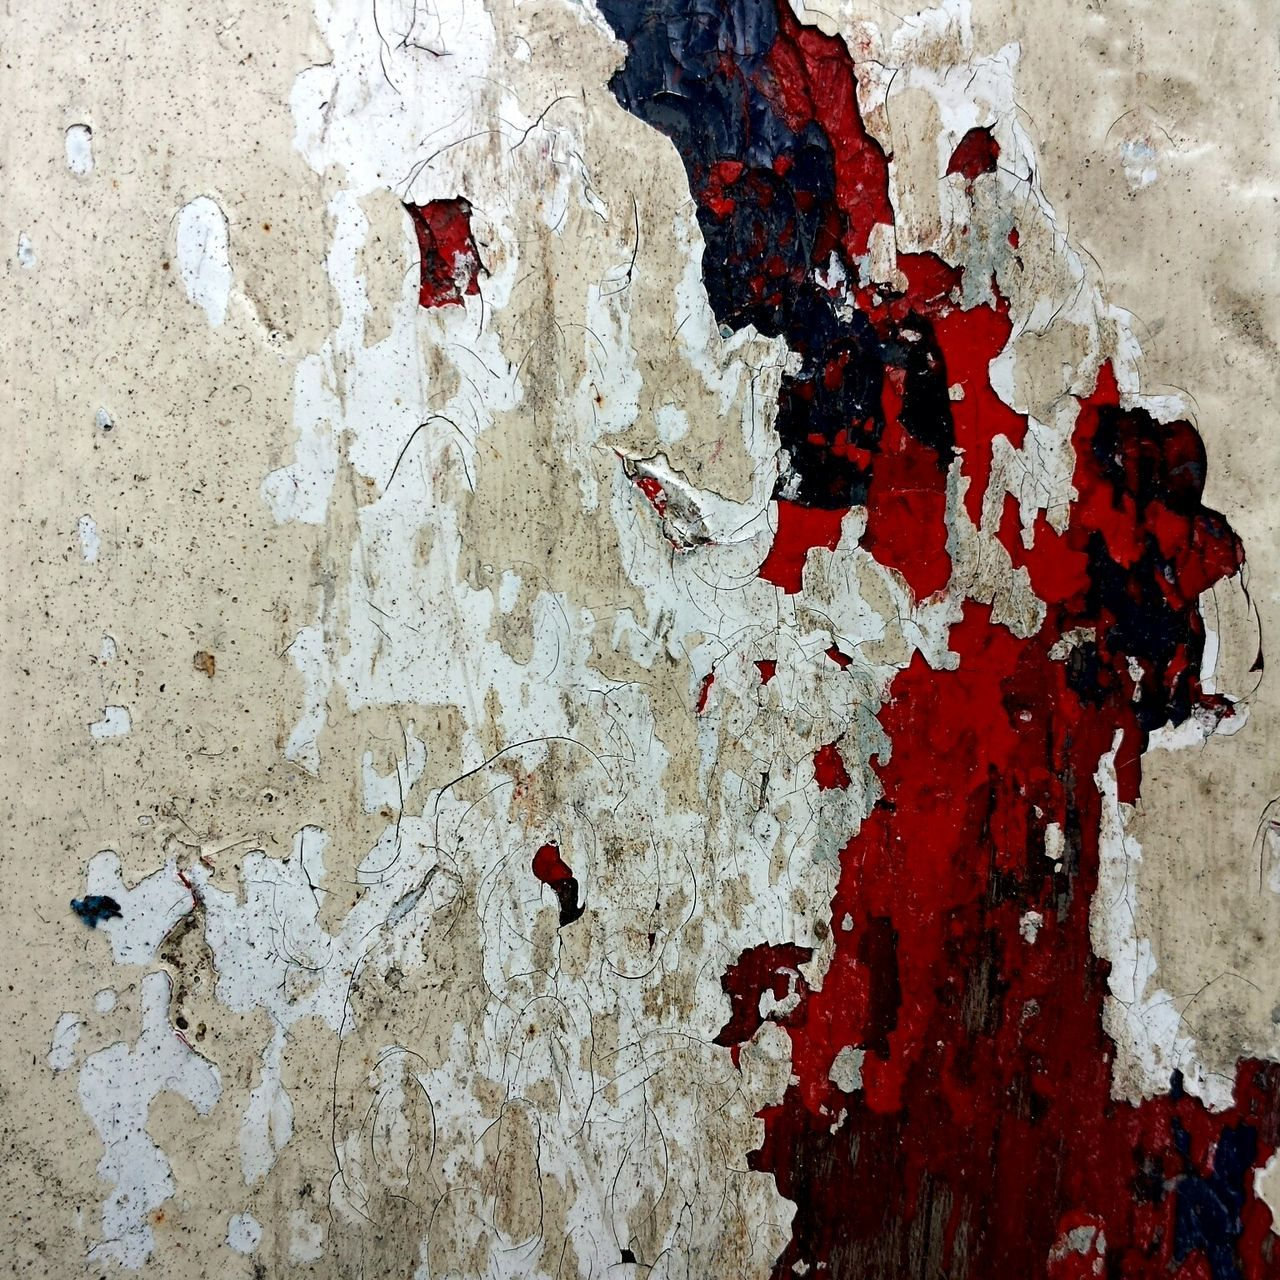 Accidental Art Unintentional Art Paint Decay Beauty Of Decay Edinburgh Abstract